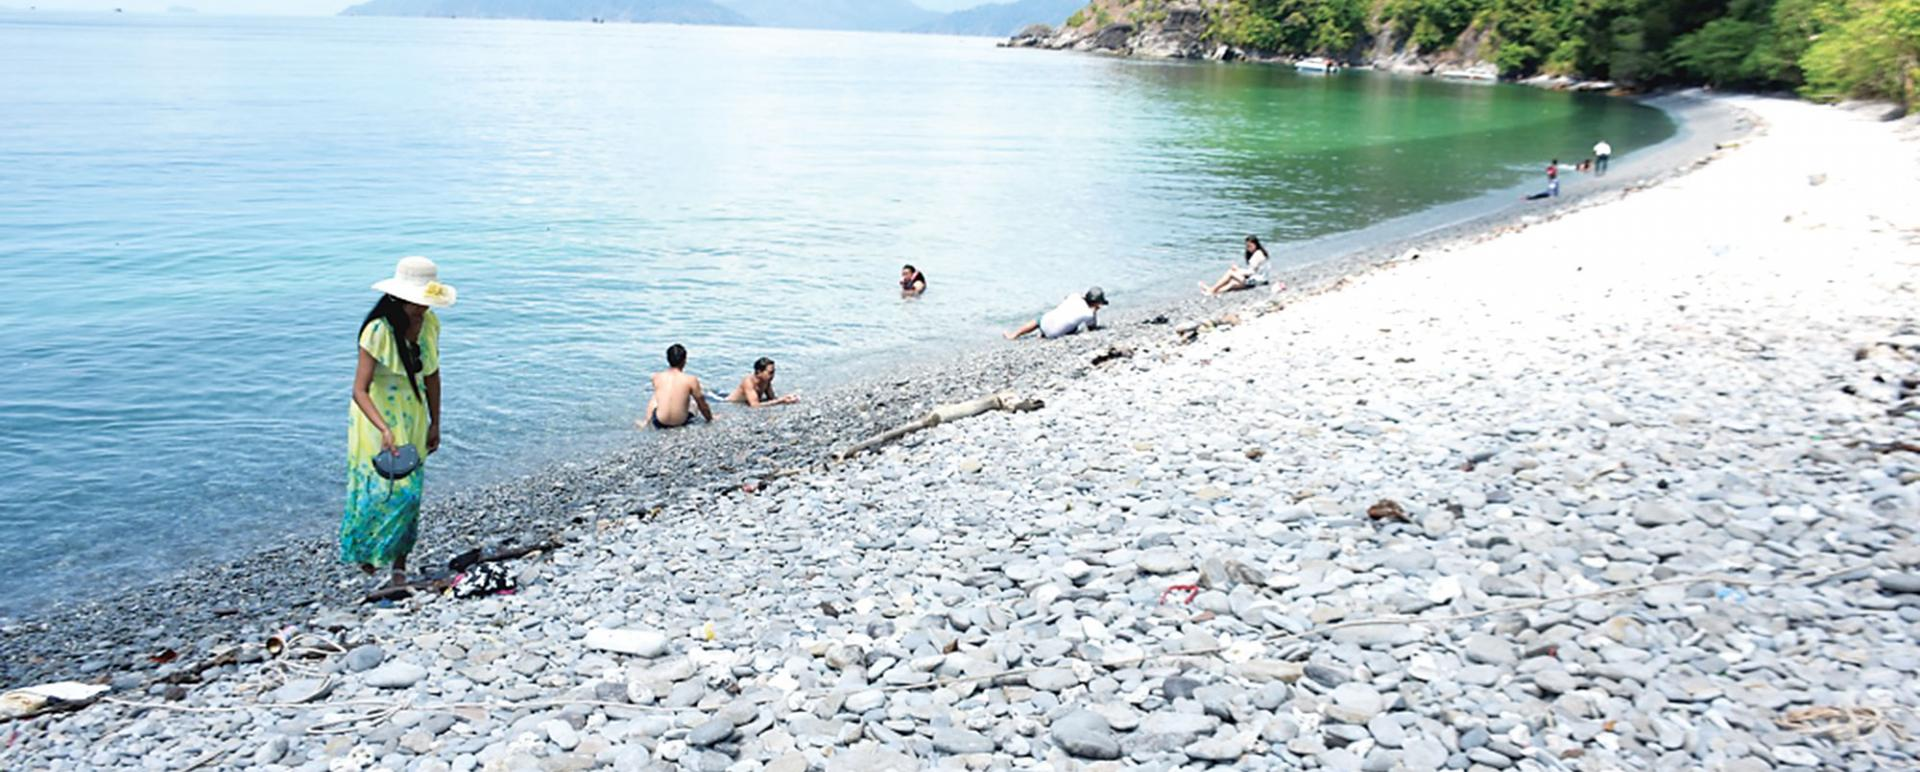 Authorities are planned to launch new tour programs at the Myeik Archipelago in Tanintharyi Region